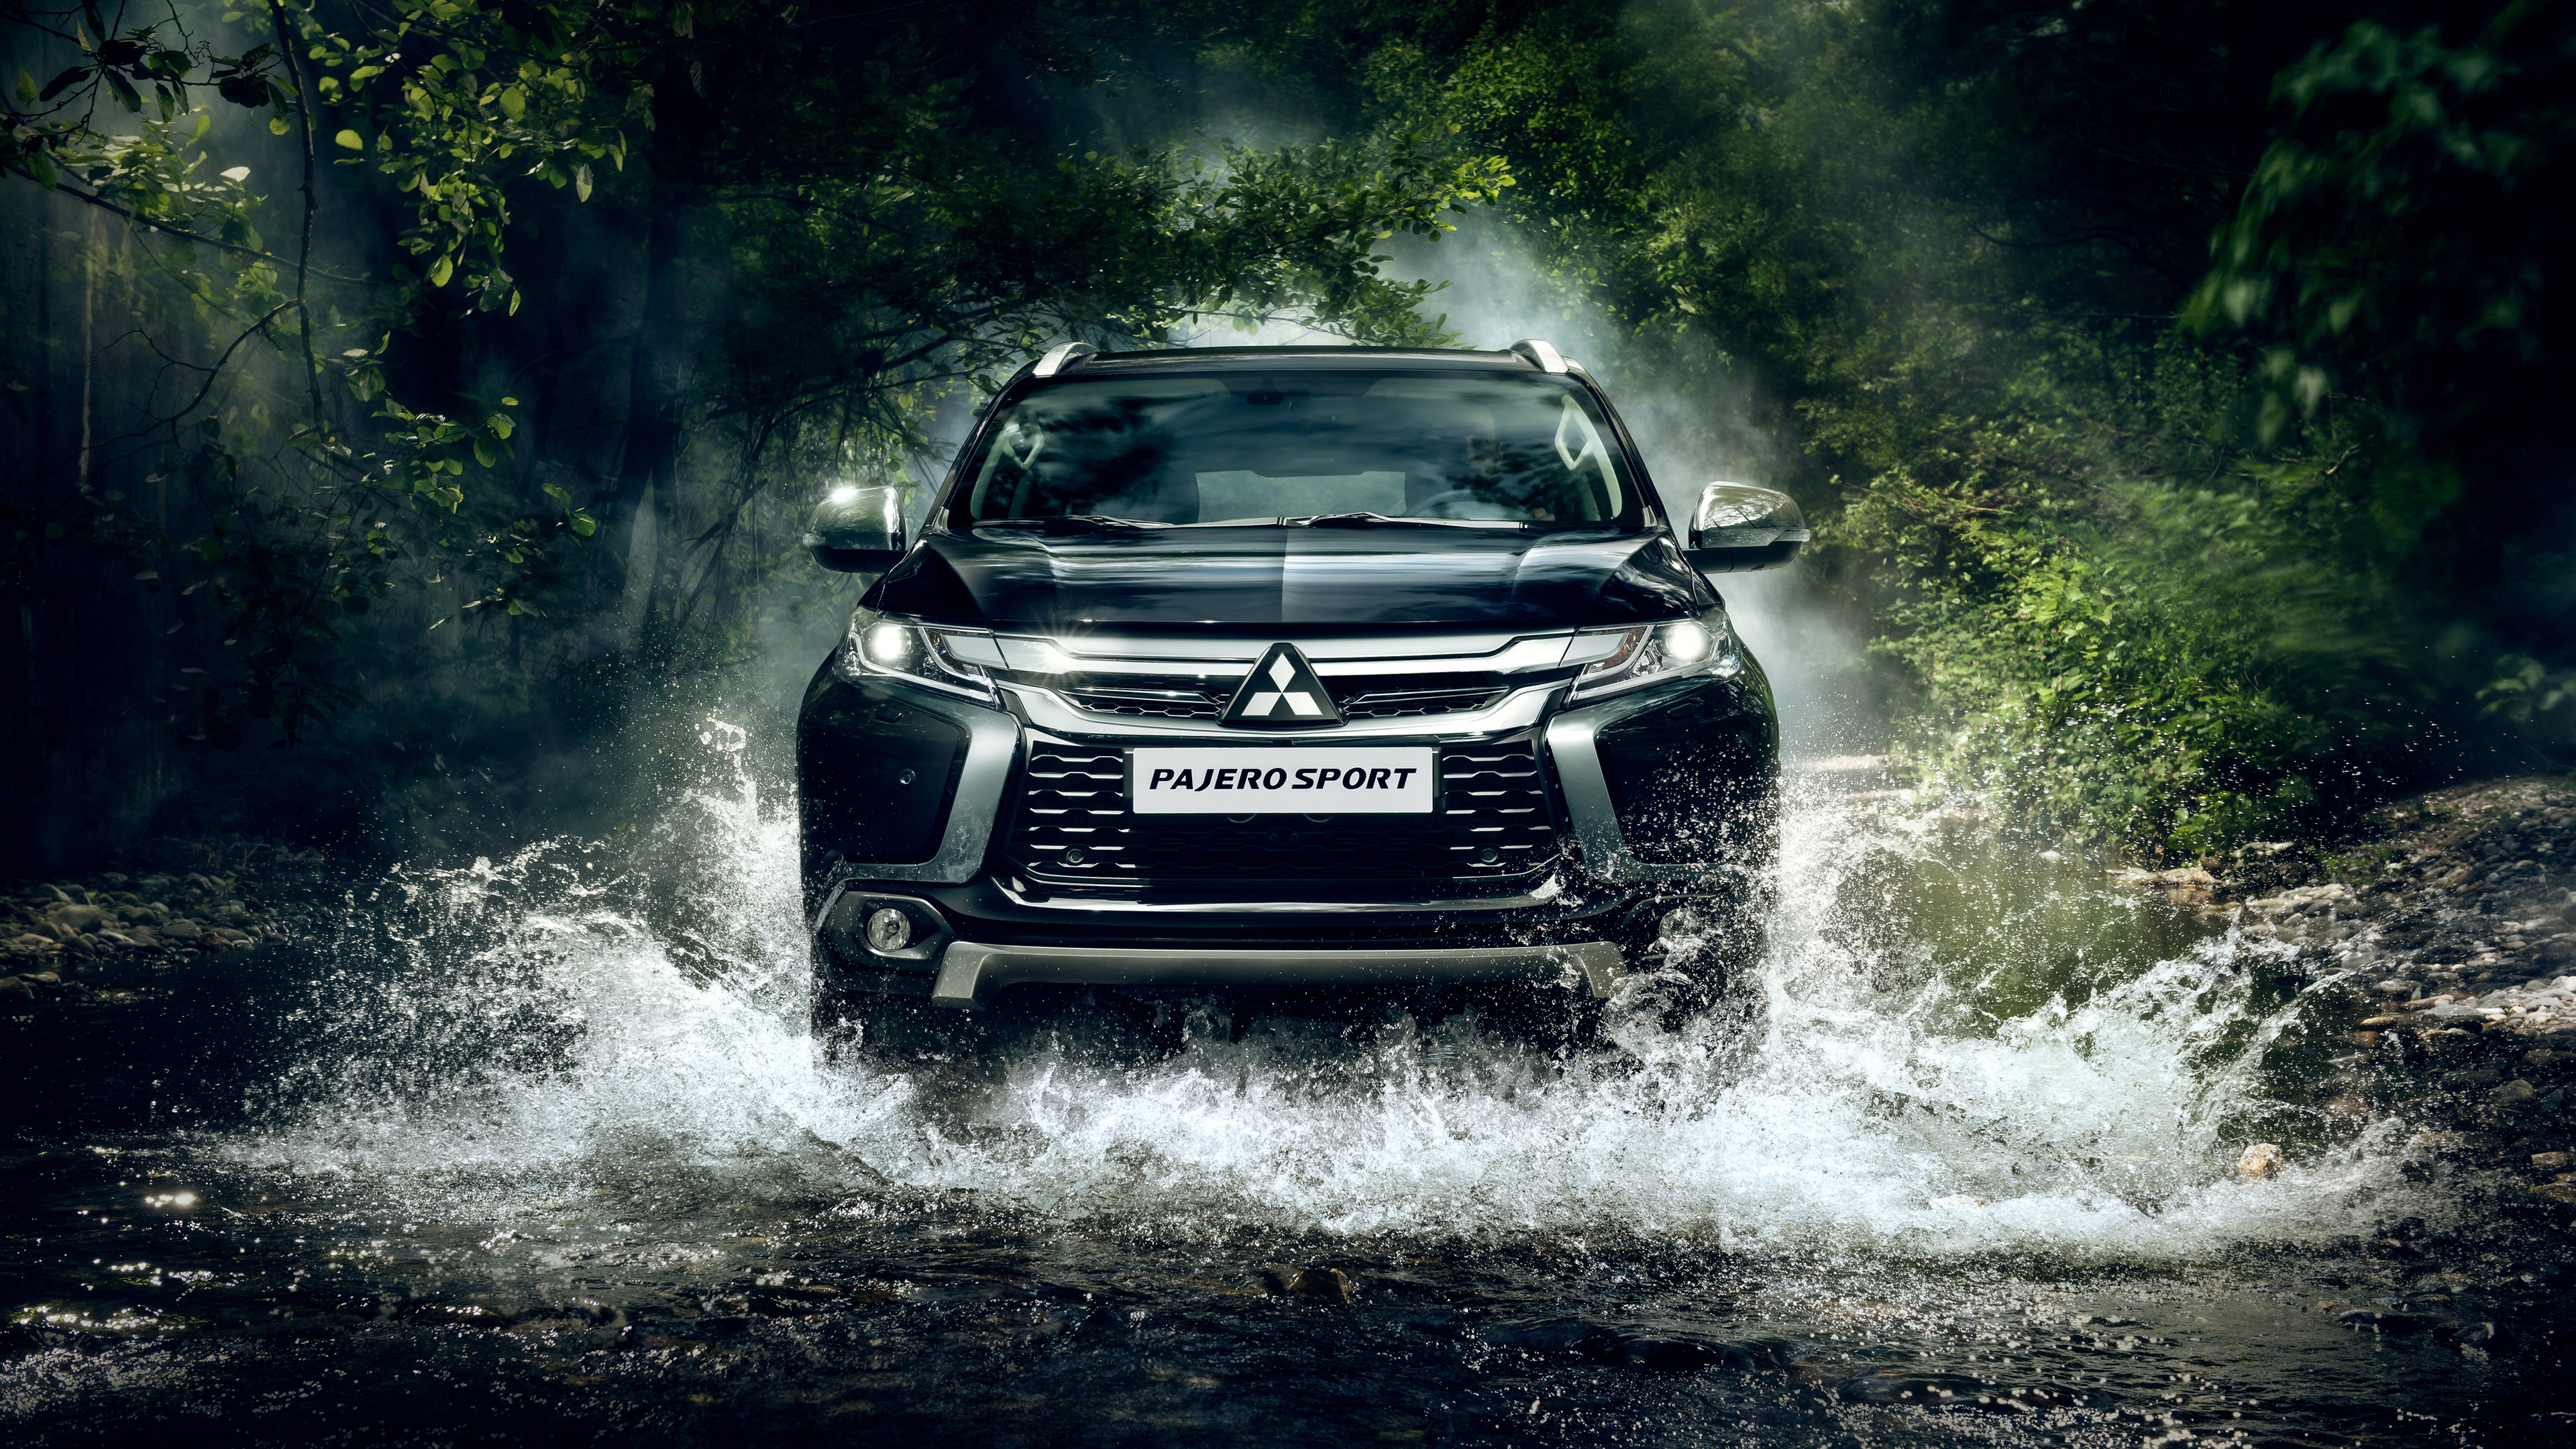 2017 mitsubishi pajero sport wallpaper | hd car wallpapers